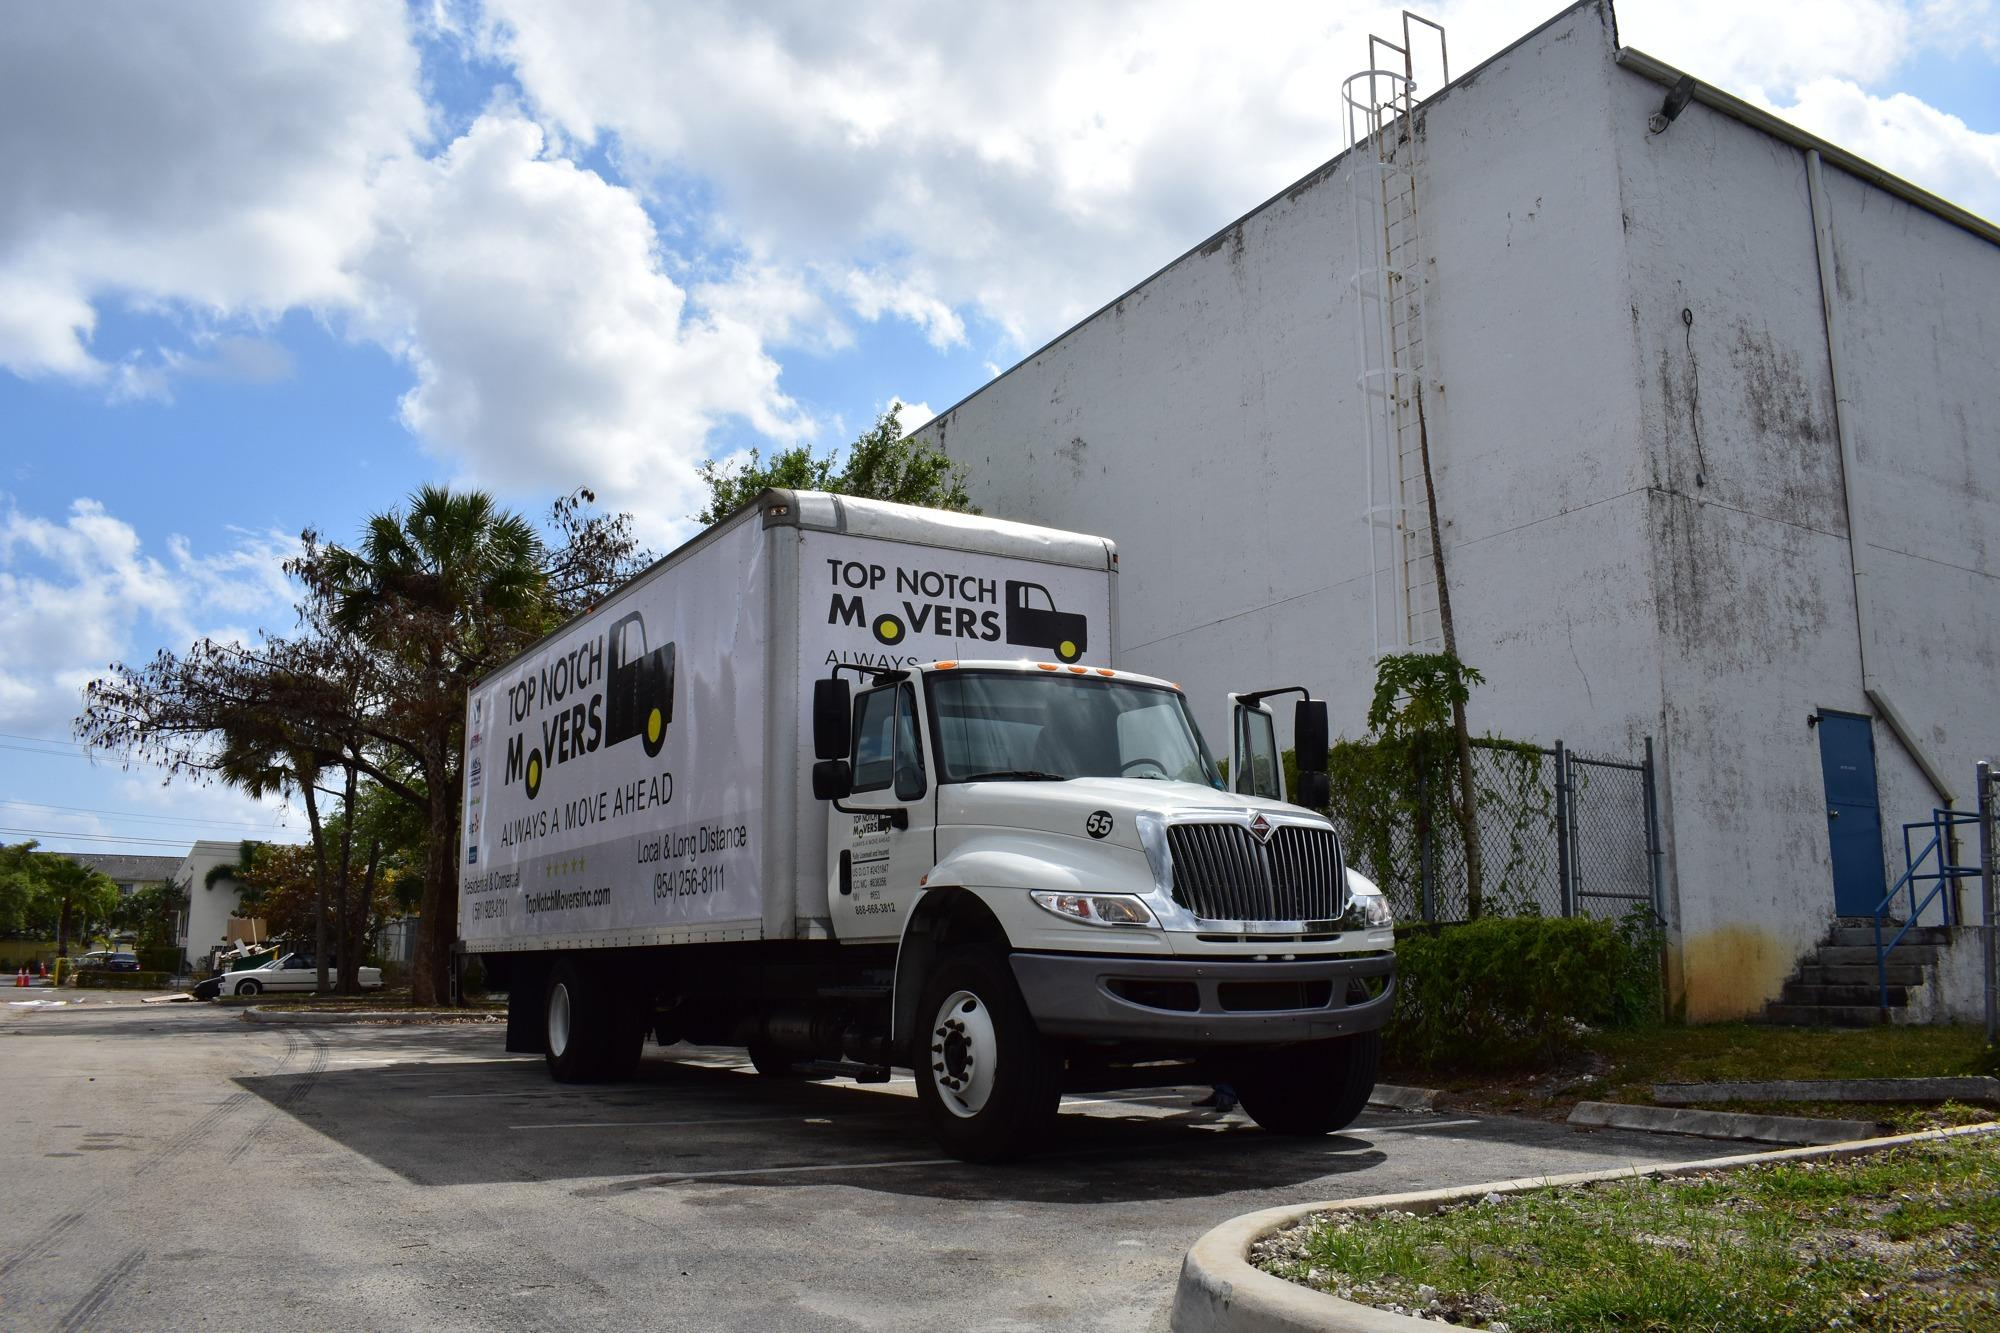 Top Notch Movers, Fort Lauderdale Florida (fl. Jeep Commander Off Road Cash For Cars Arizona. Quality Promotional Pens Plumber Lake Oswego. Photography Studio Los Angeles. Mckinney Dentist Virginia Parkway. This Site Is Blocked By The Sonicwall Content Filter Service. Easy Way Of Getting Pregnant. Remote Desktop Command Line Hsa Tax Benefits. Architecture Degree Programs